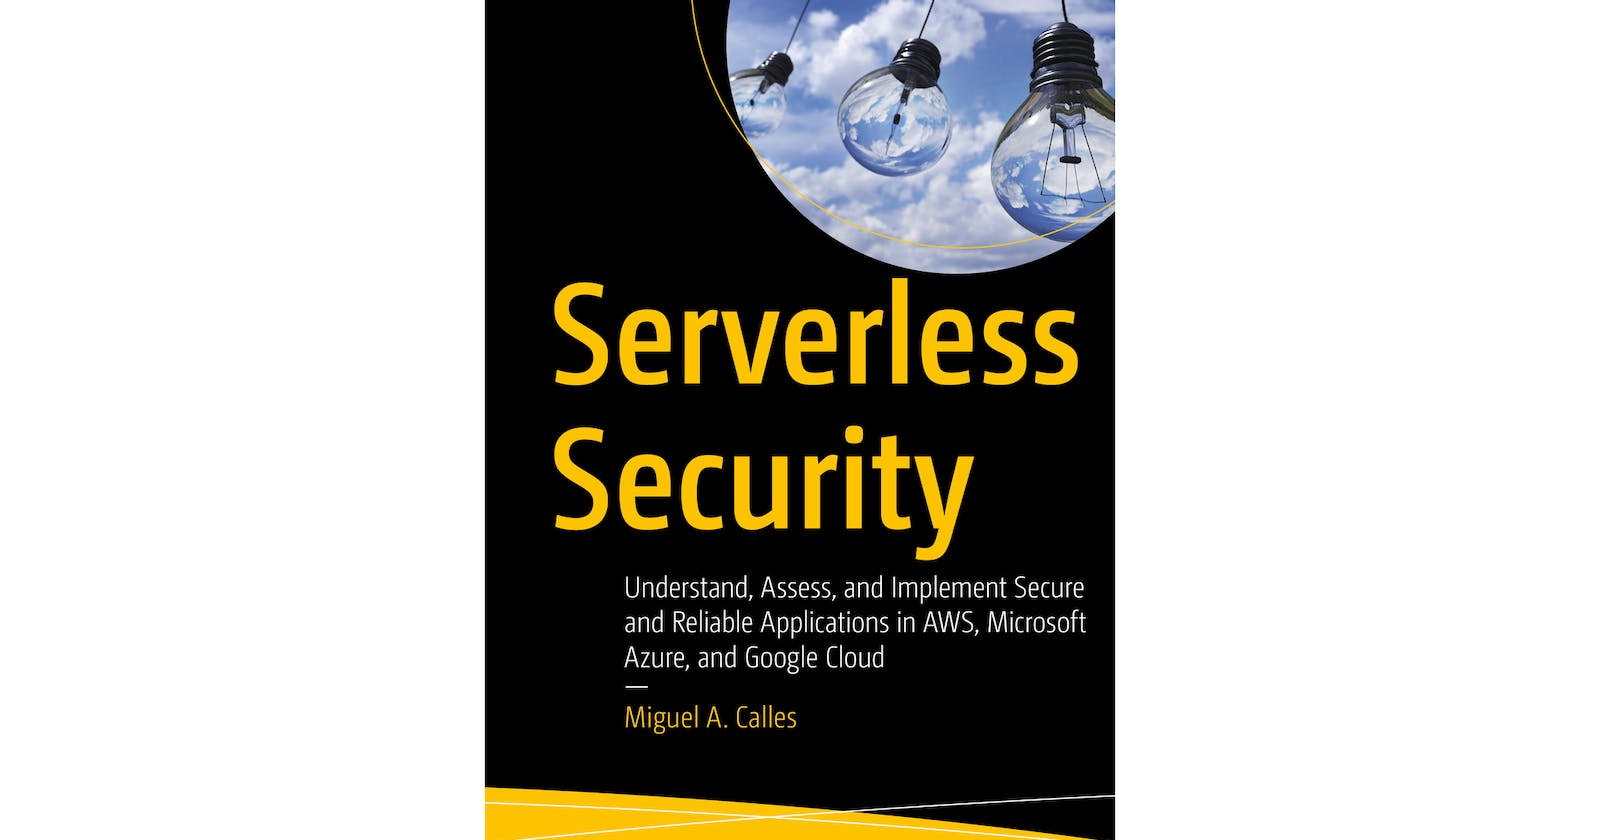 Why I Wrote A Serverless Security Book